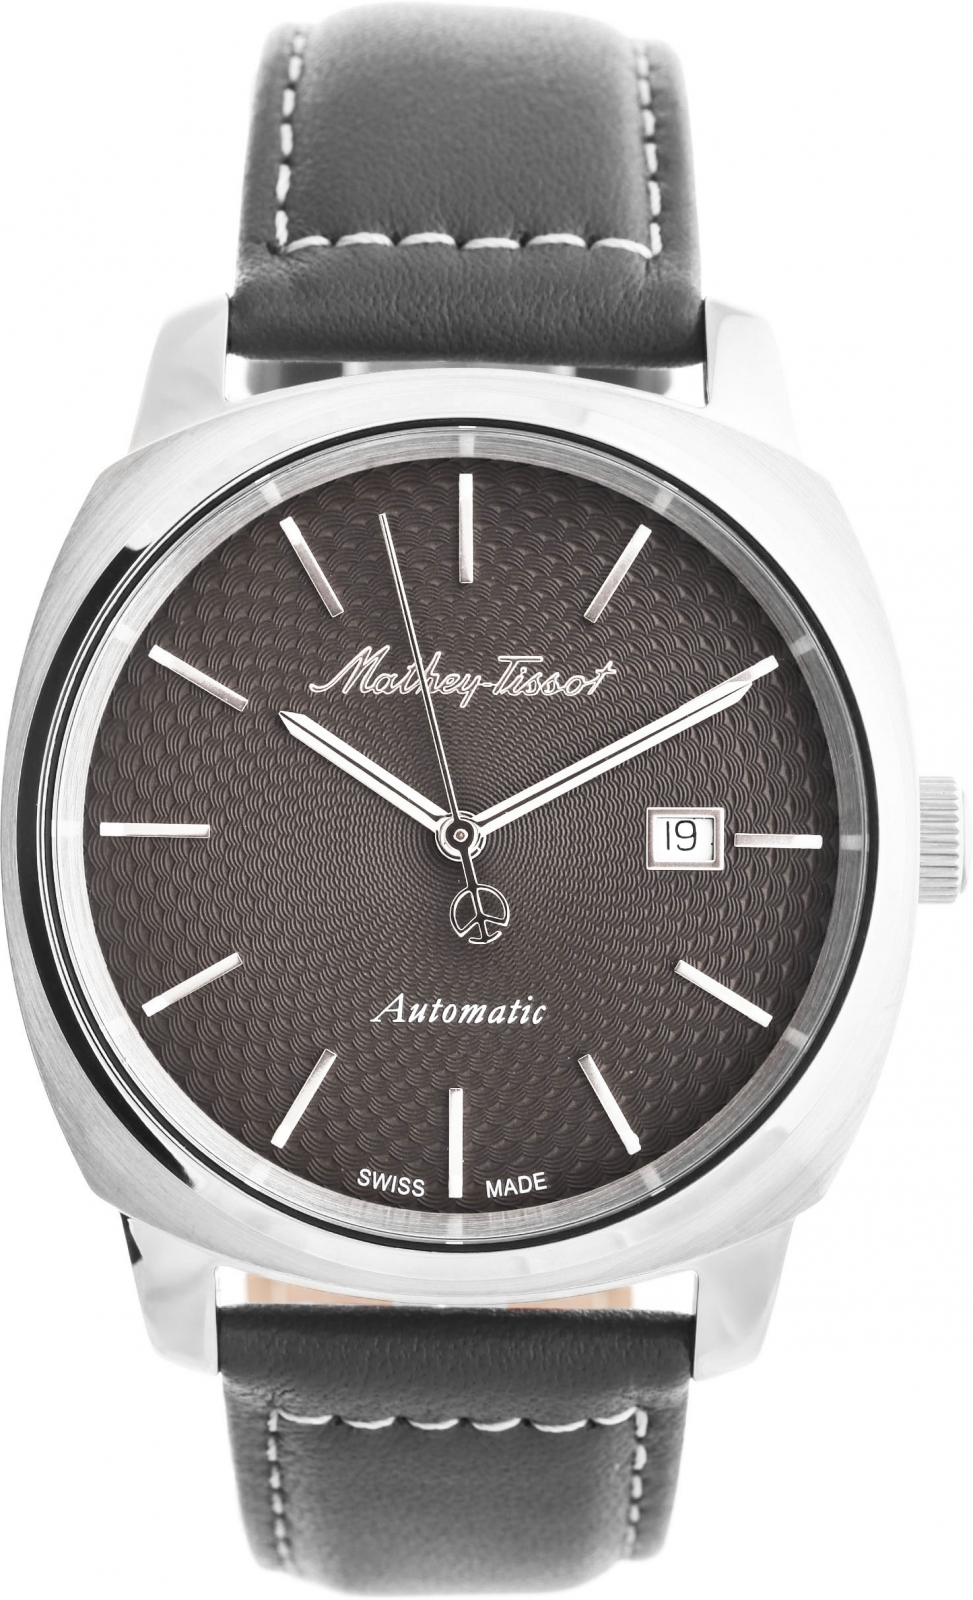 Mathey-Tissot Smart H6940ATS mathey tissot smart h6940mai